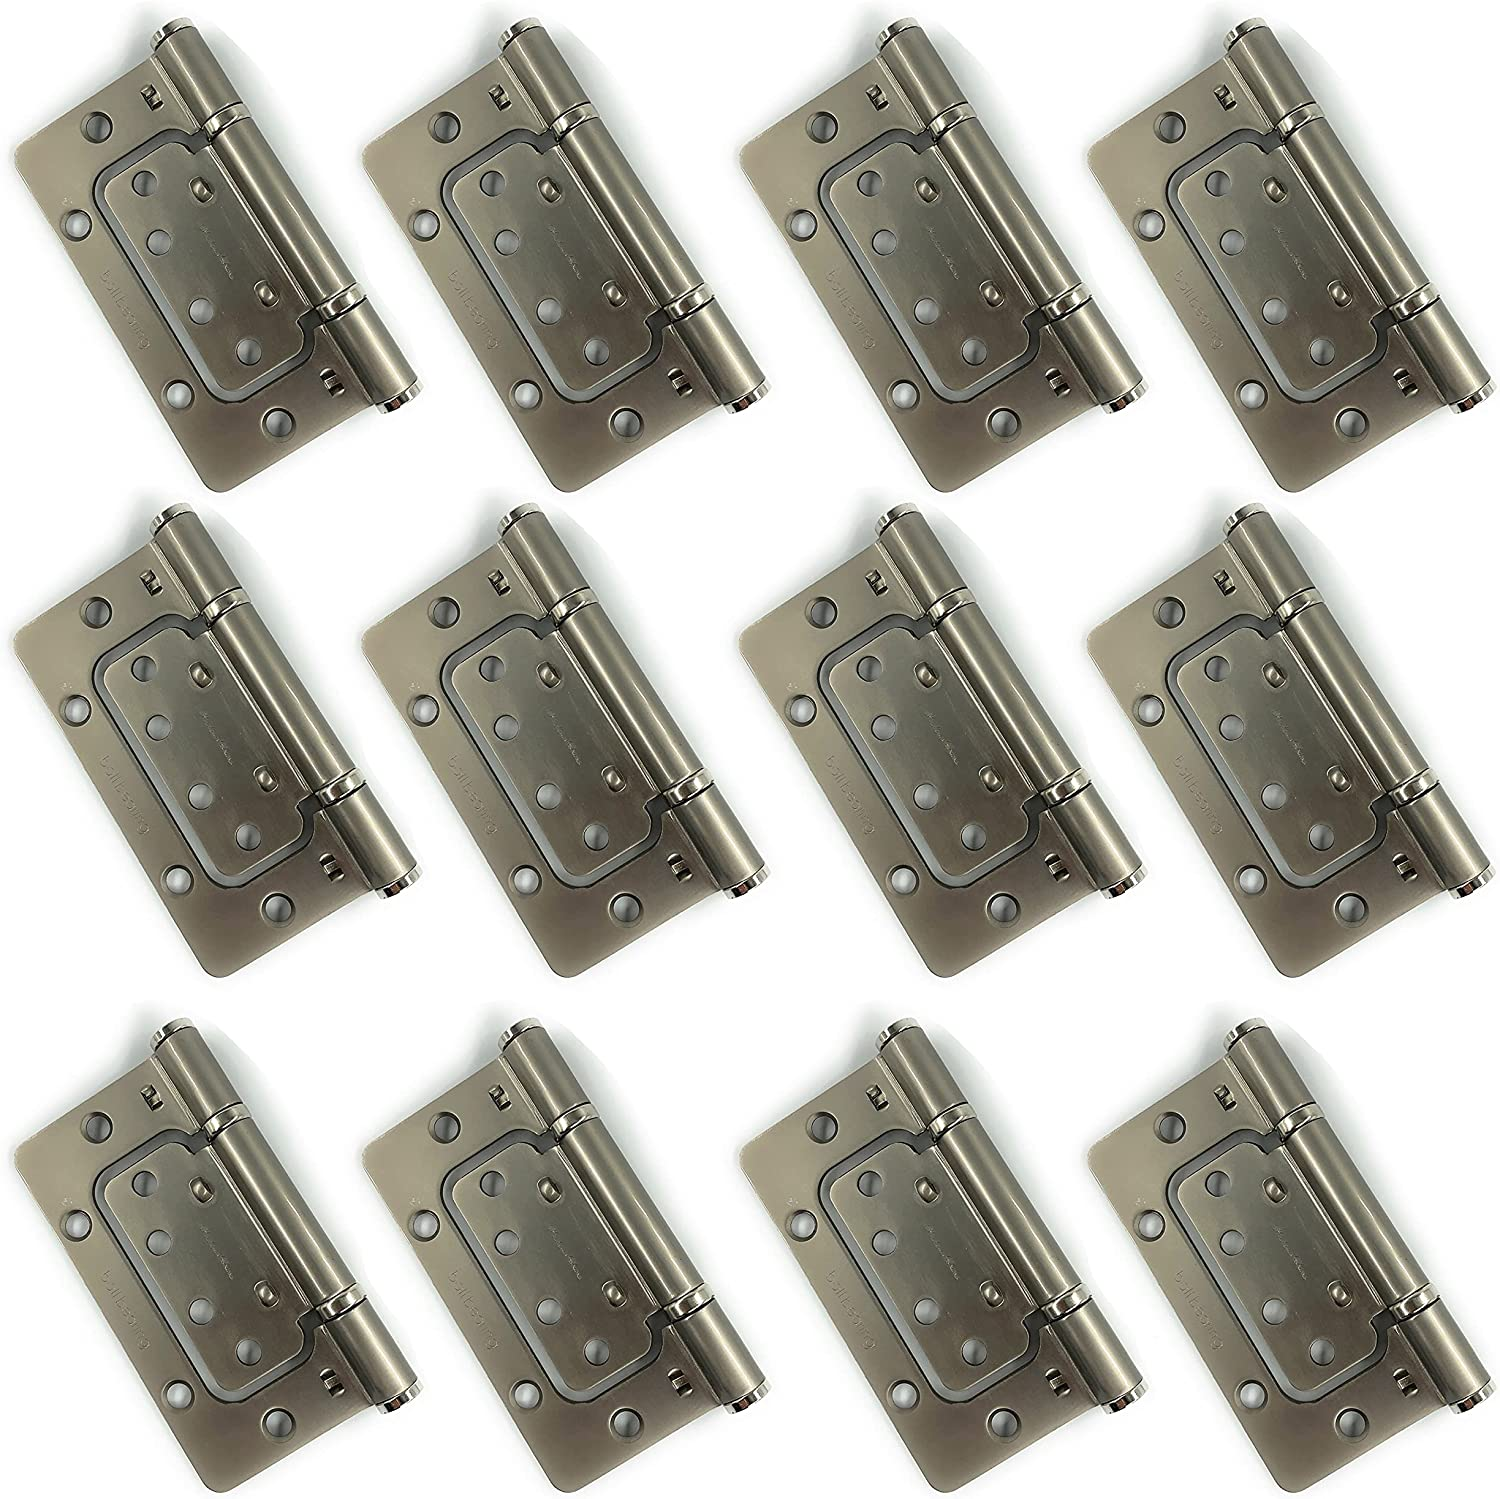 Jovely Heavy-Duty Polished Chrome Non-Mortise EZ Door Hinges 12 Pack, 3.5 inches 4 inches, 1/4